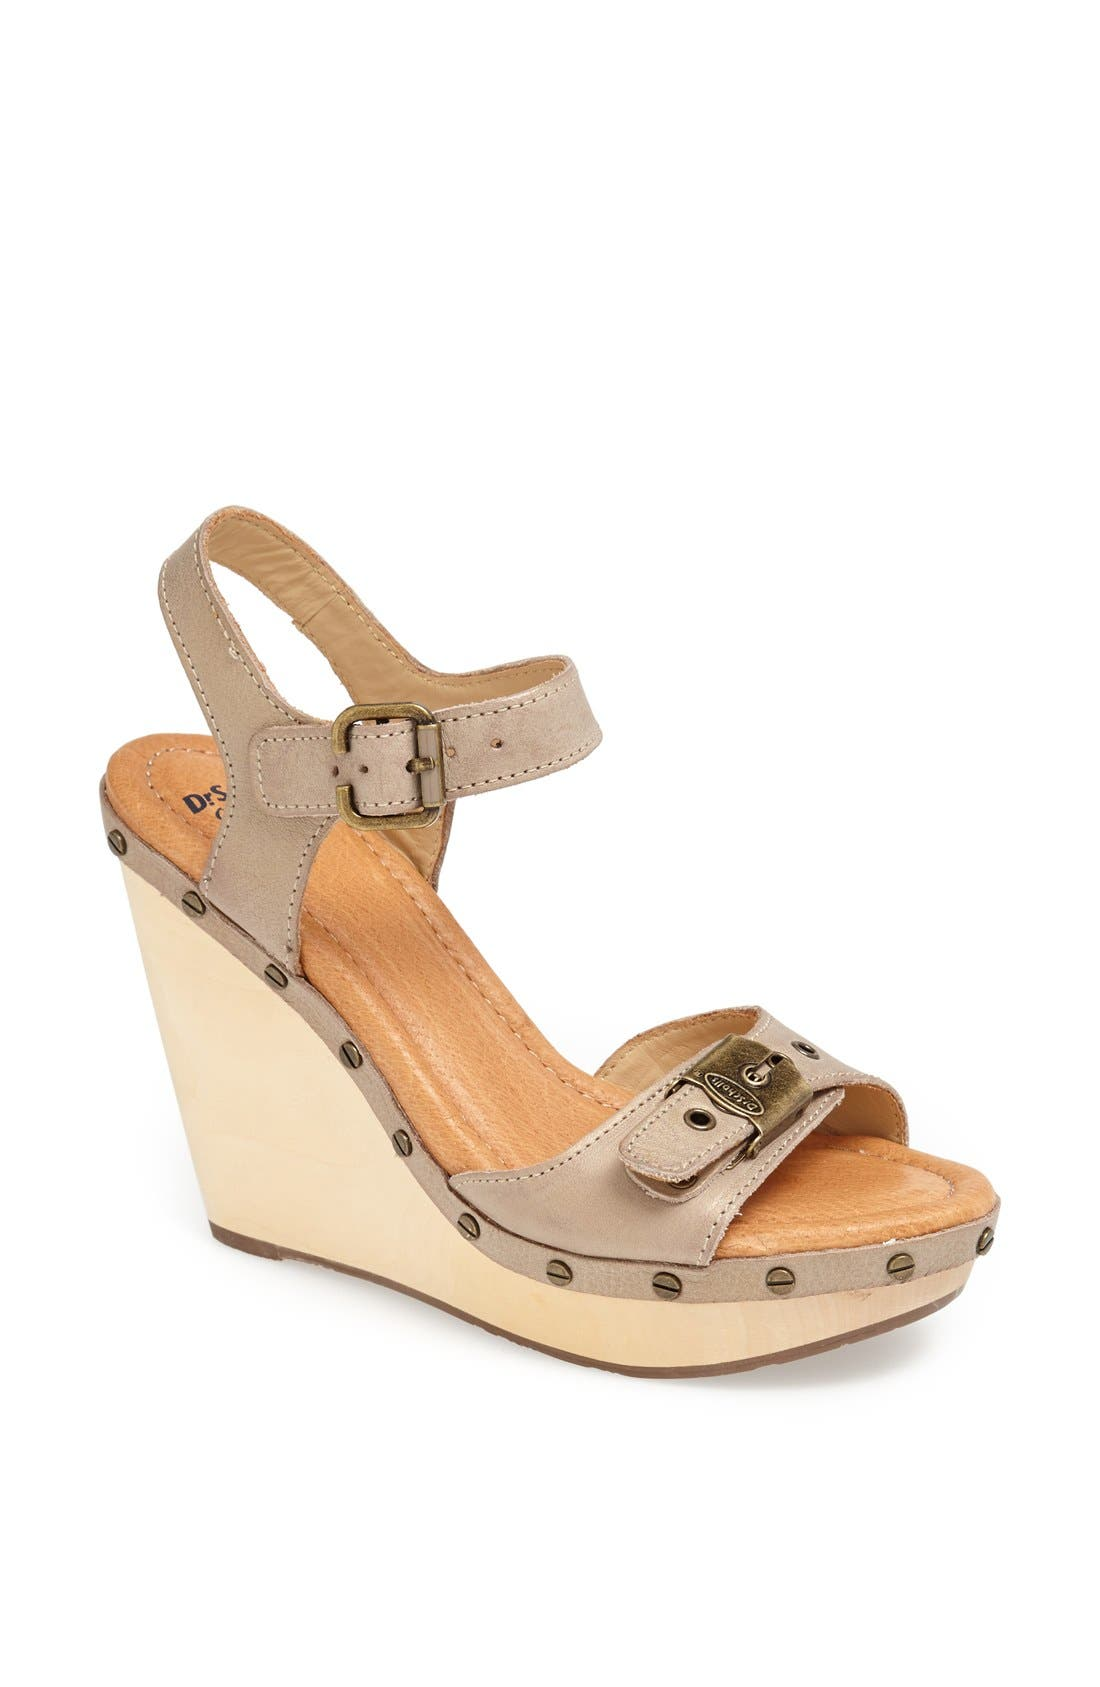 Main Image - Dr. Scholl's Original Collection 'Lucia' Sandal